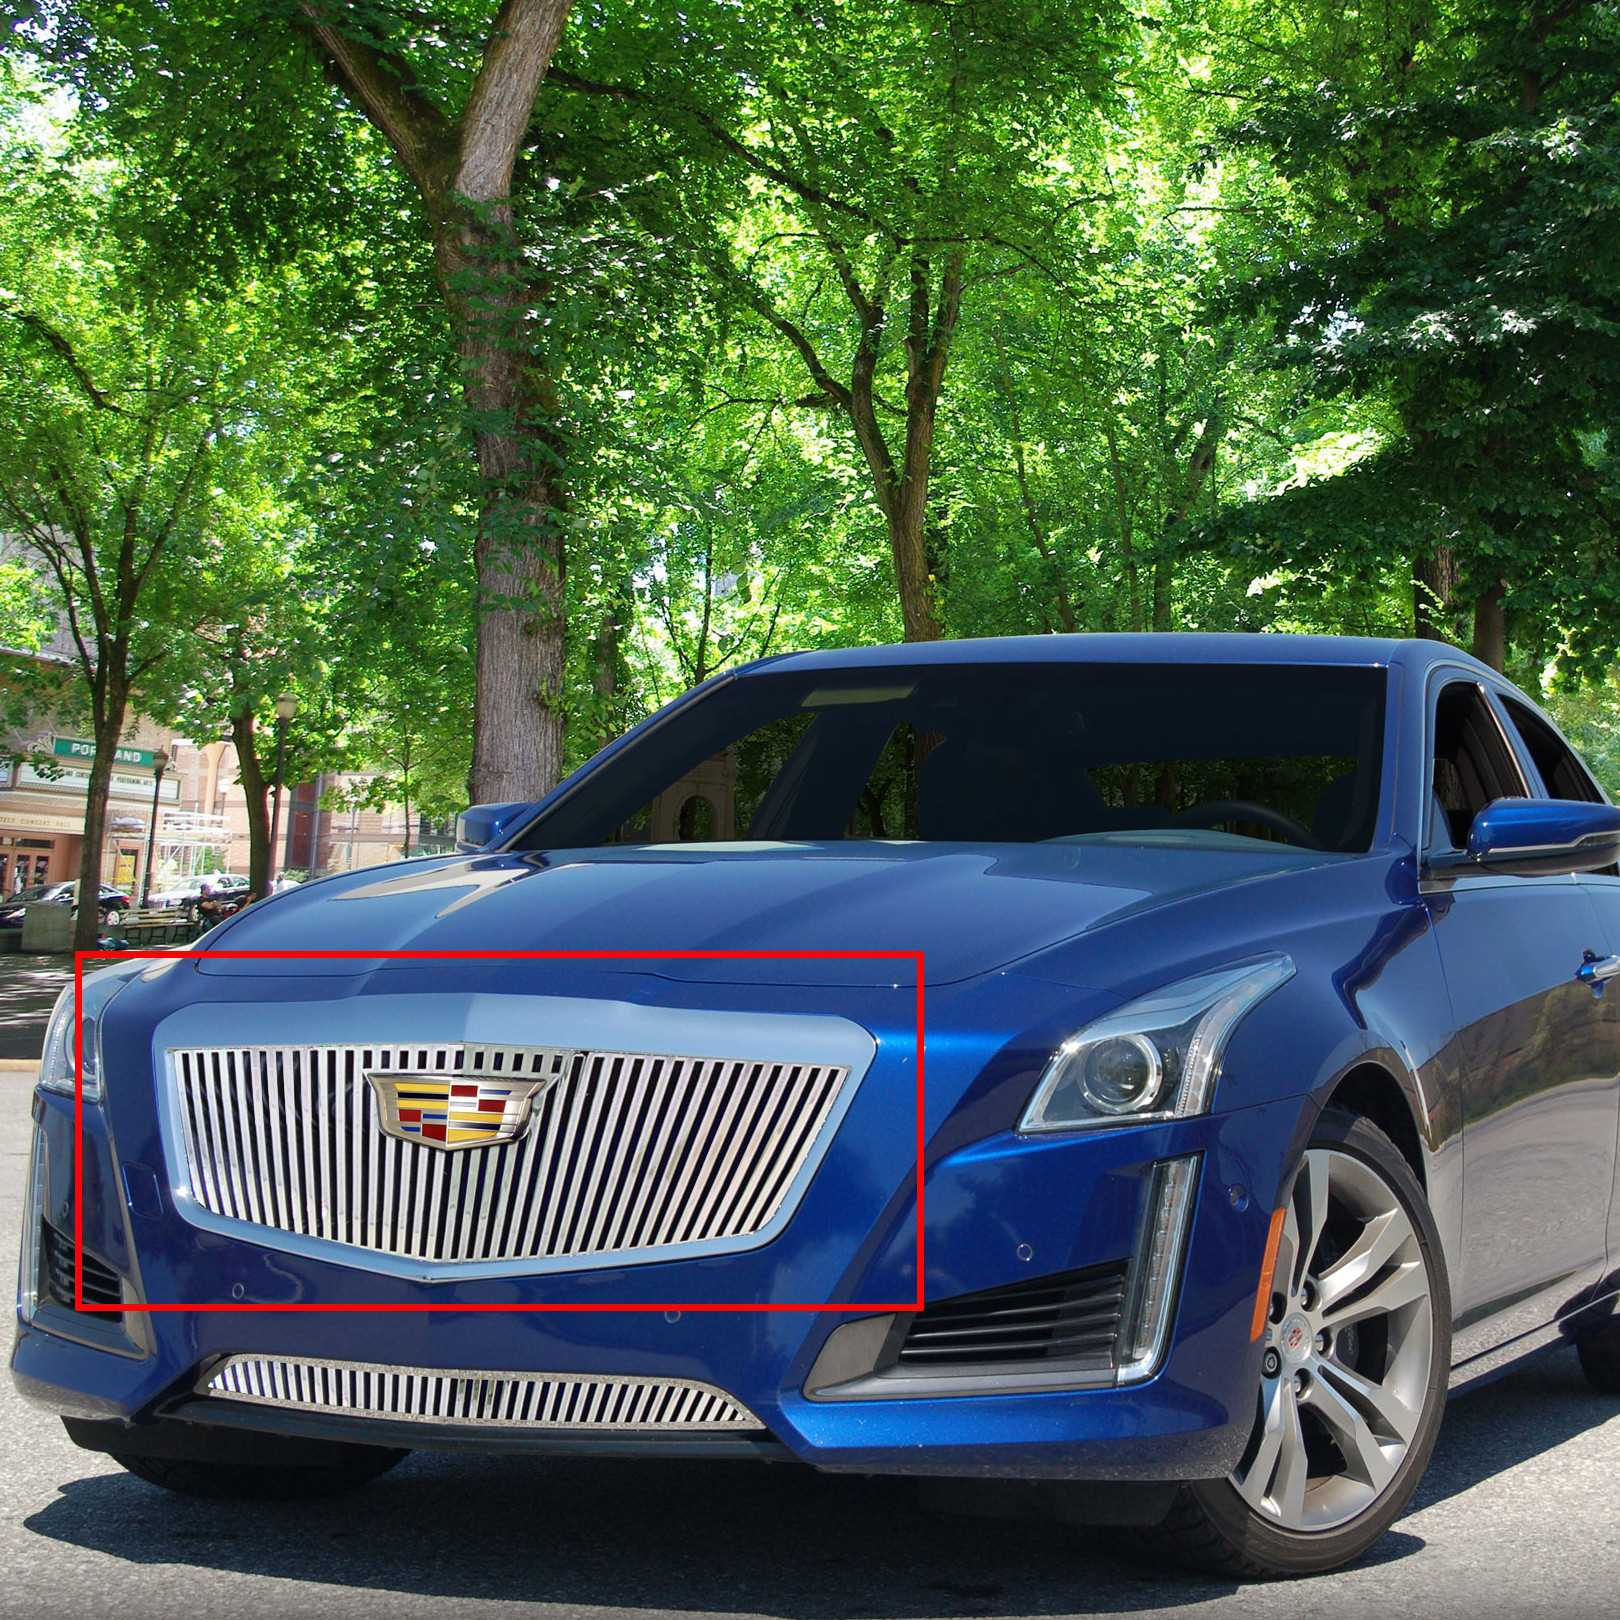 E g classicse g classics 2015 2015 cadillac cts grille vertical style grille 1007 010u 15cv